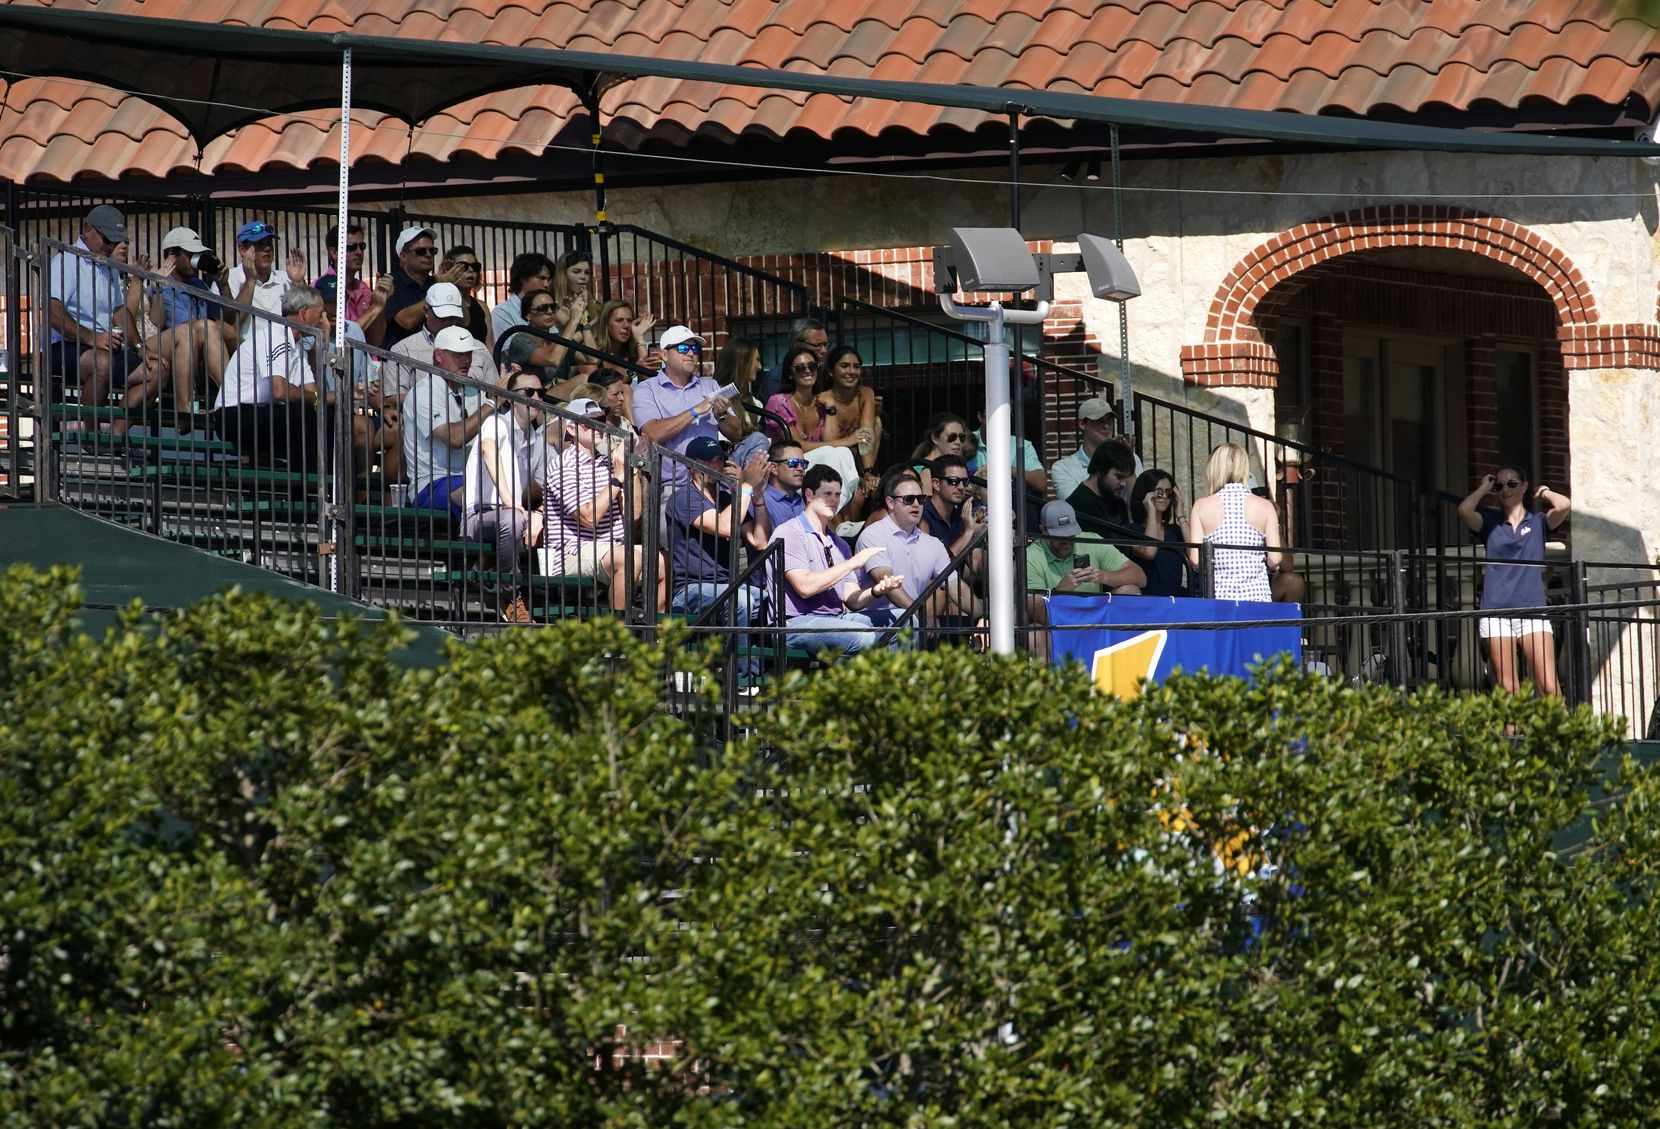 Golf fans fill bleachers built outside the 16th tee box as they applaud PGA Tour golfer Jordan Spieth during the opening round of the Charles Schwab Challenge at the Colonial Country Club in Fort Worth, Thursday, June 11, 2020.  Fans were not allowed to attend The Challenge, the first tour event since the COVID-19 pandemic began.